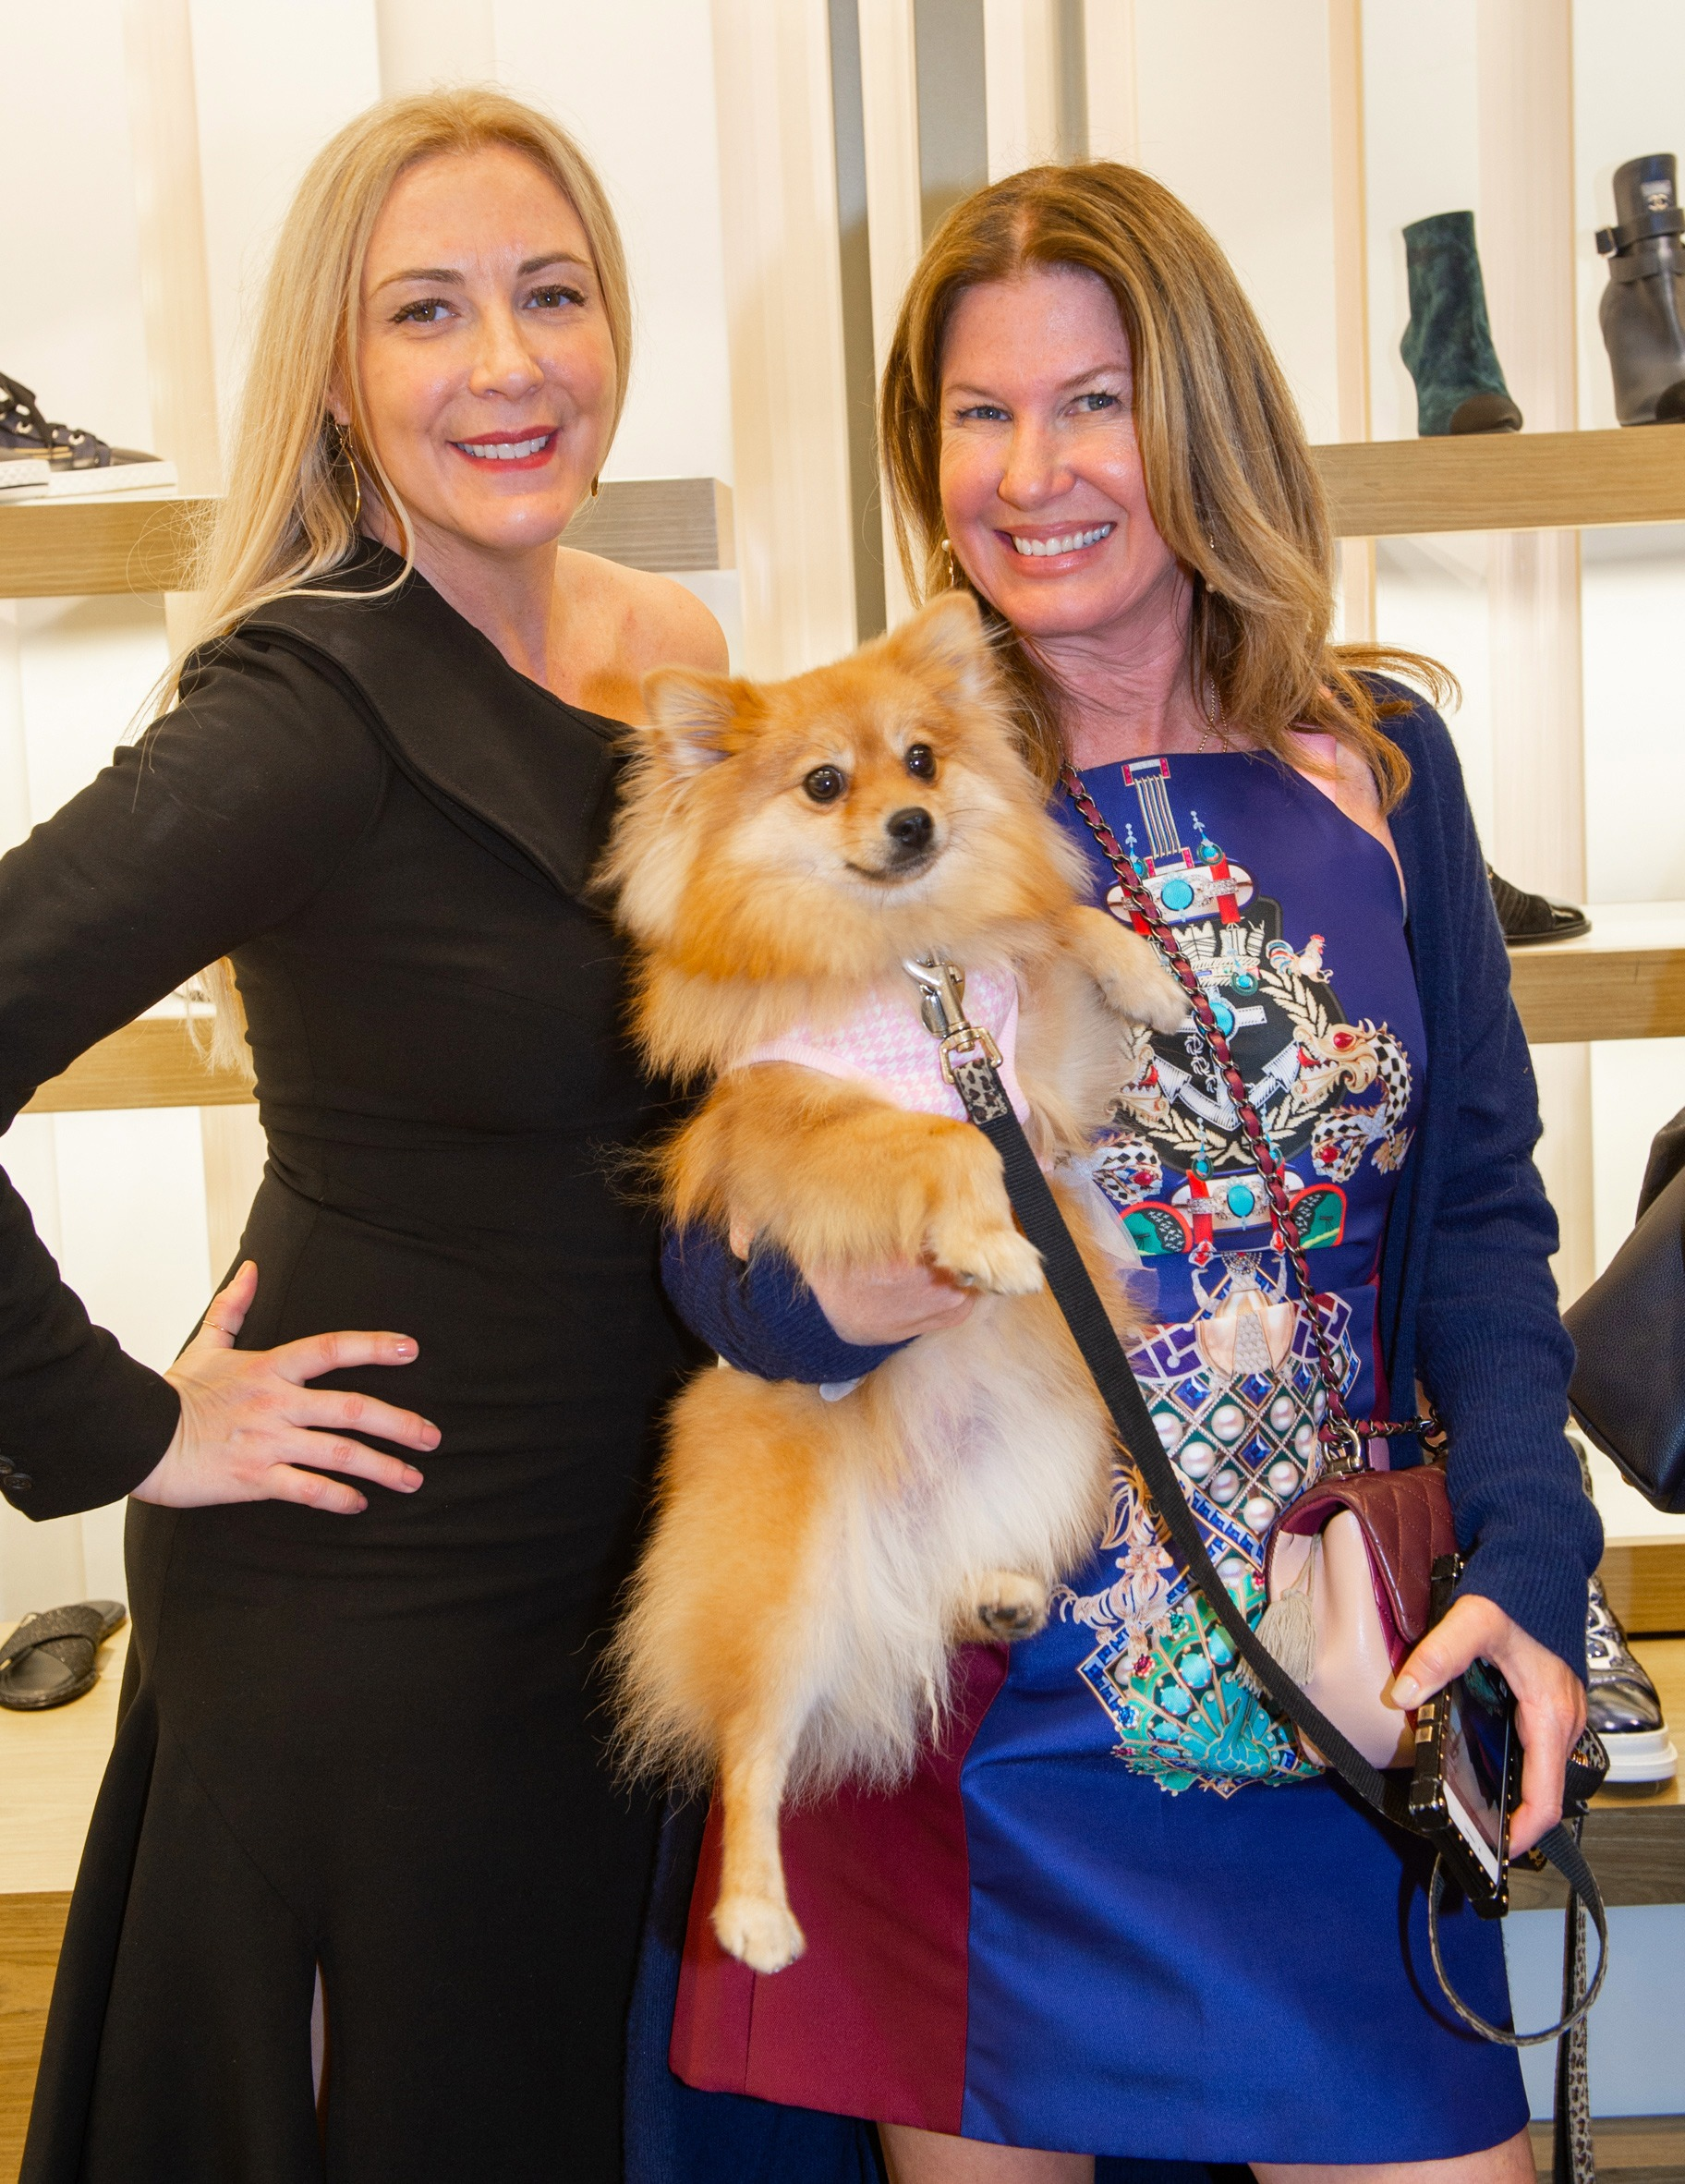 Founder of Walk In Style For The Animals, Angela Birdman and guest Dana Shear enjoying their shopping time inside Neiman Marcus Bal Harbour.